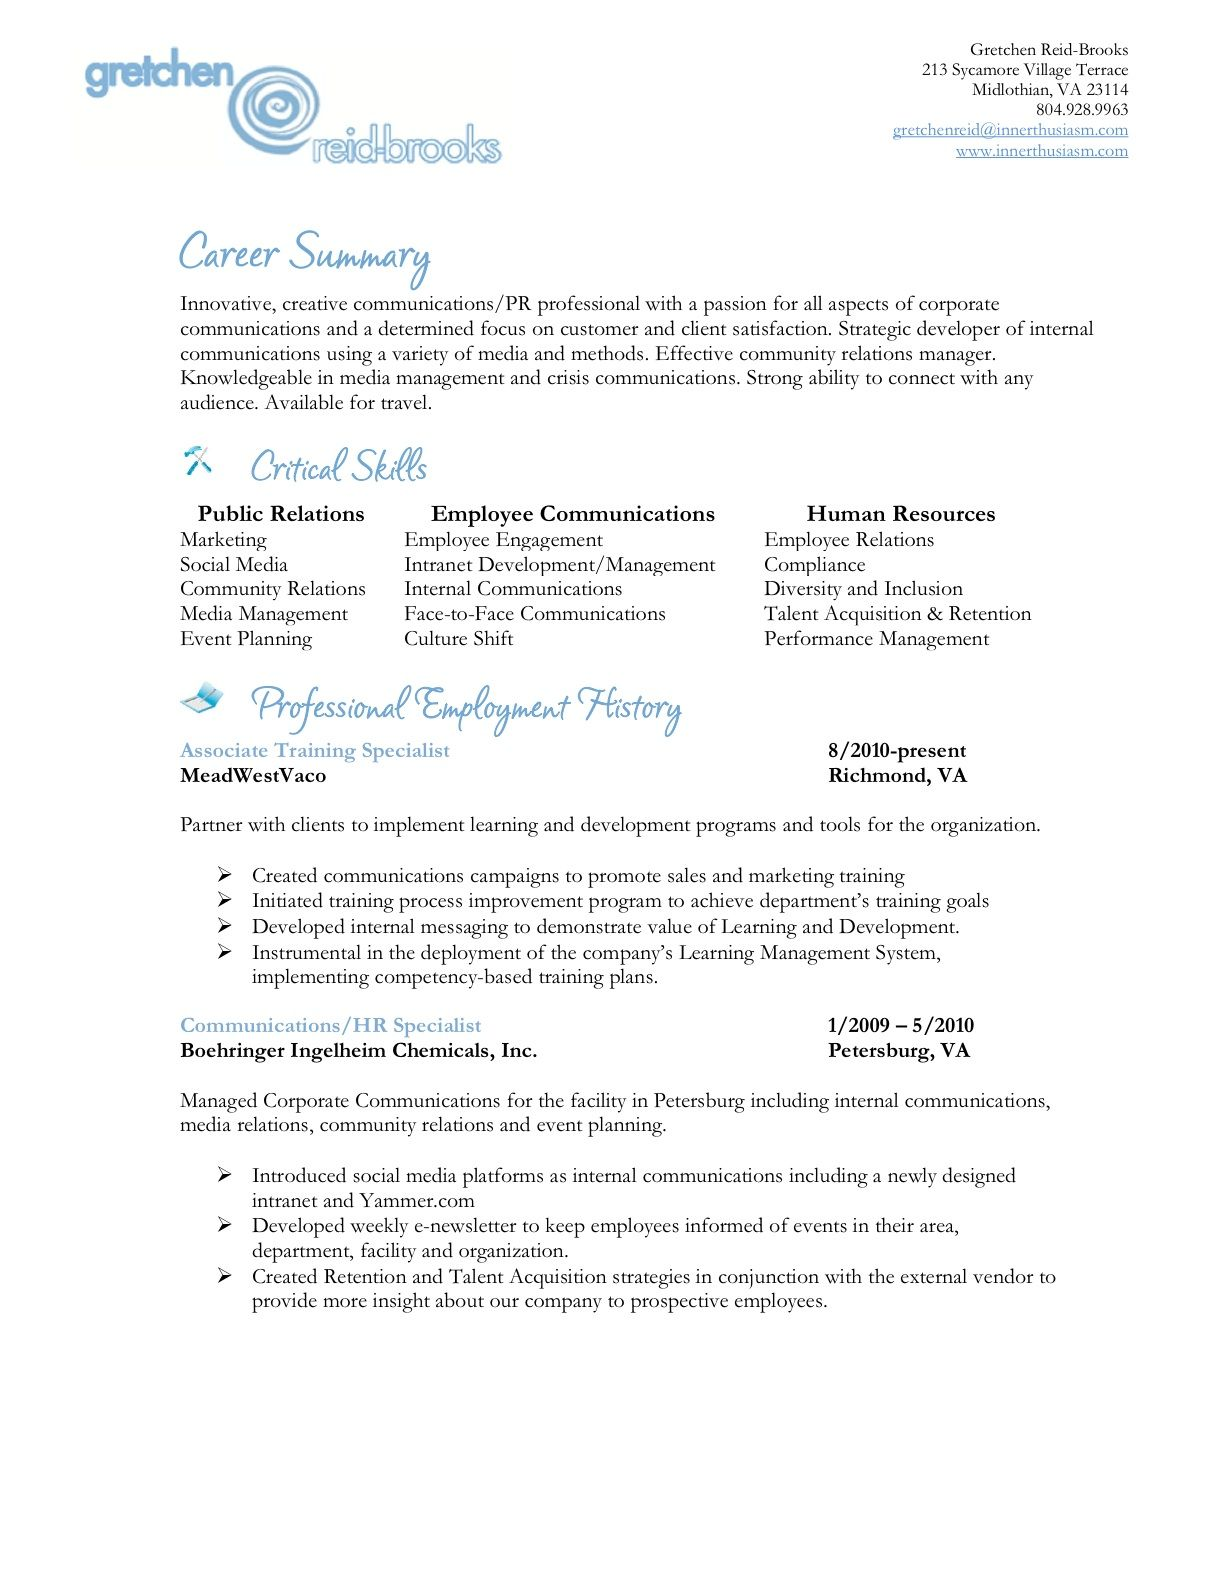 Resume Sampleminus The Font Stylecolor Wording Format Is Okay